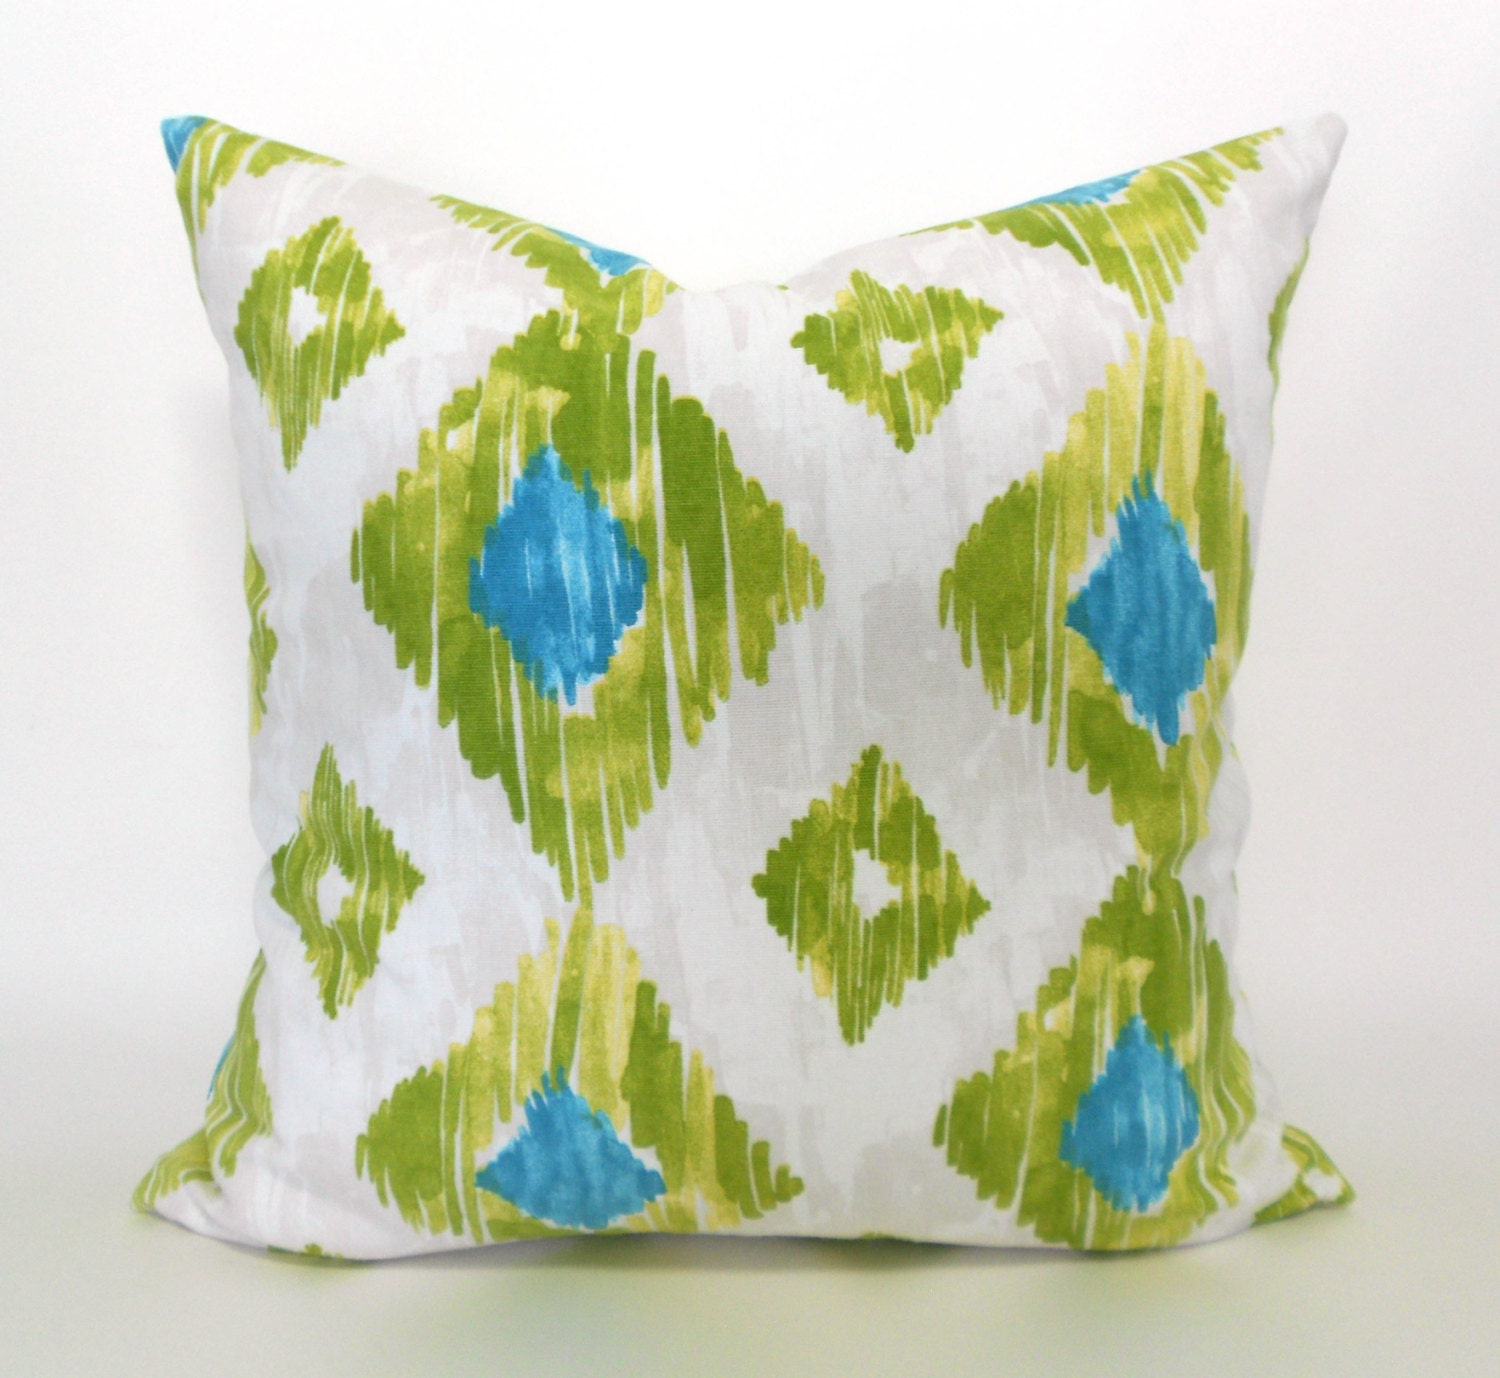 Throw Pillow Cover Dimensions : Pillow Covers ANY SIZE Decorative Pillow Cover Pillows Home